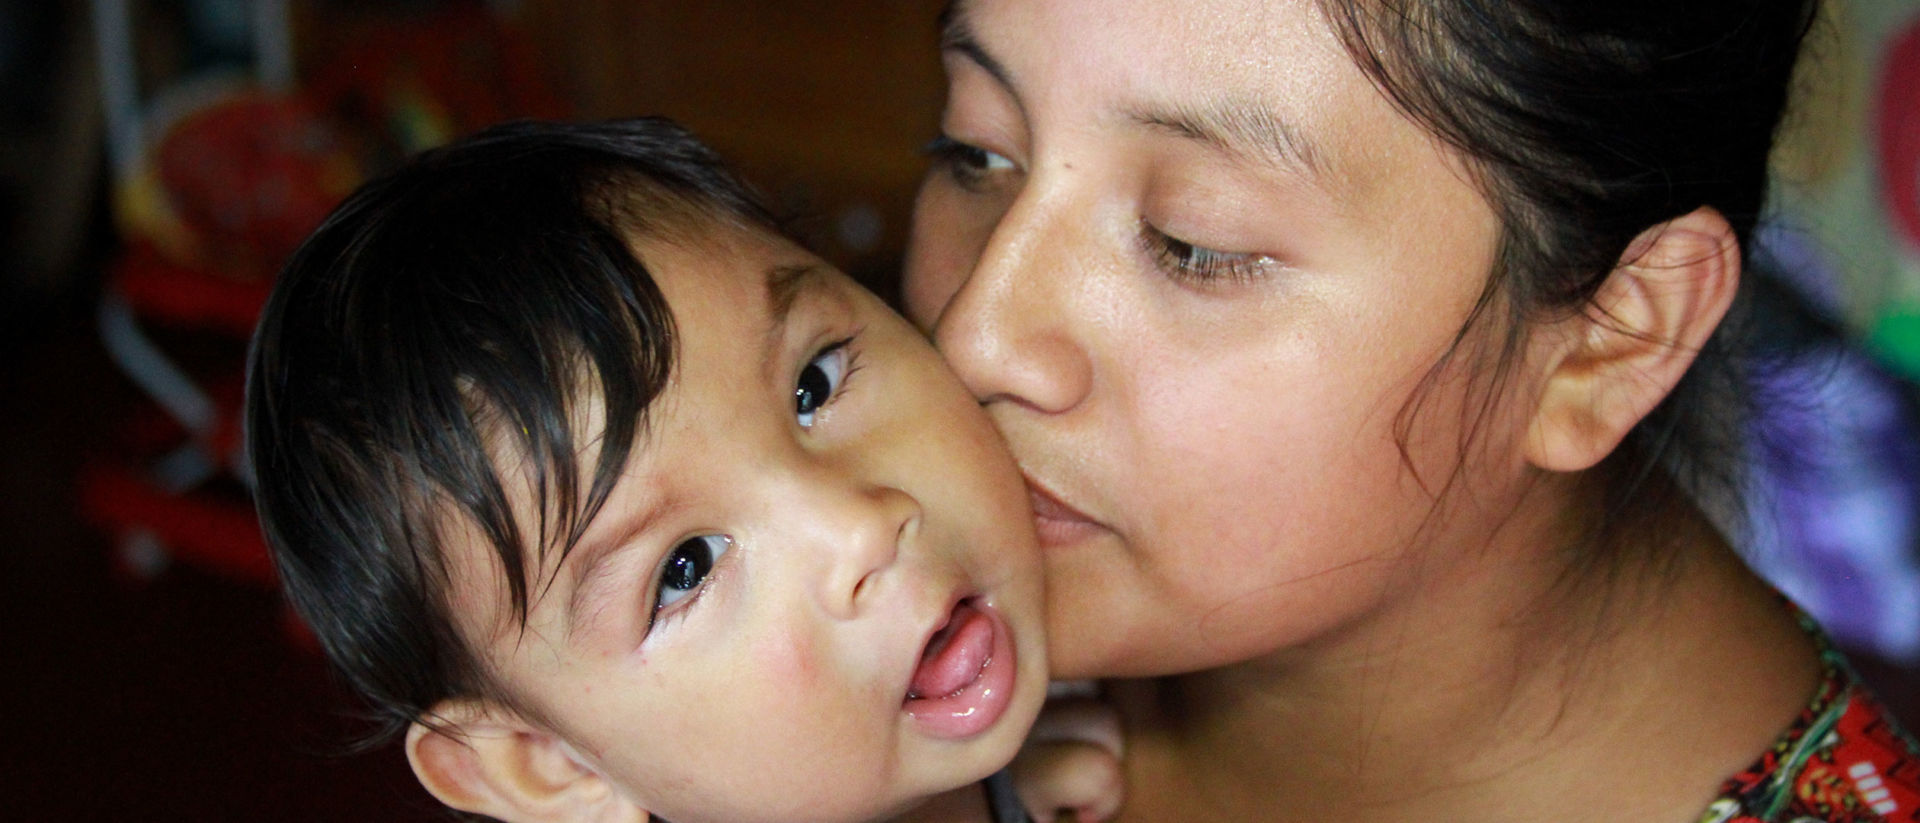 Mother kisses her son infected with the Zika virus